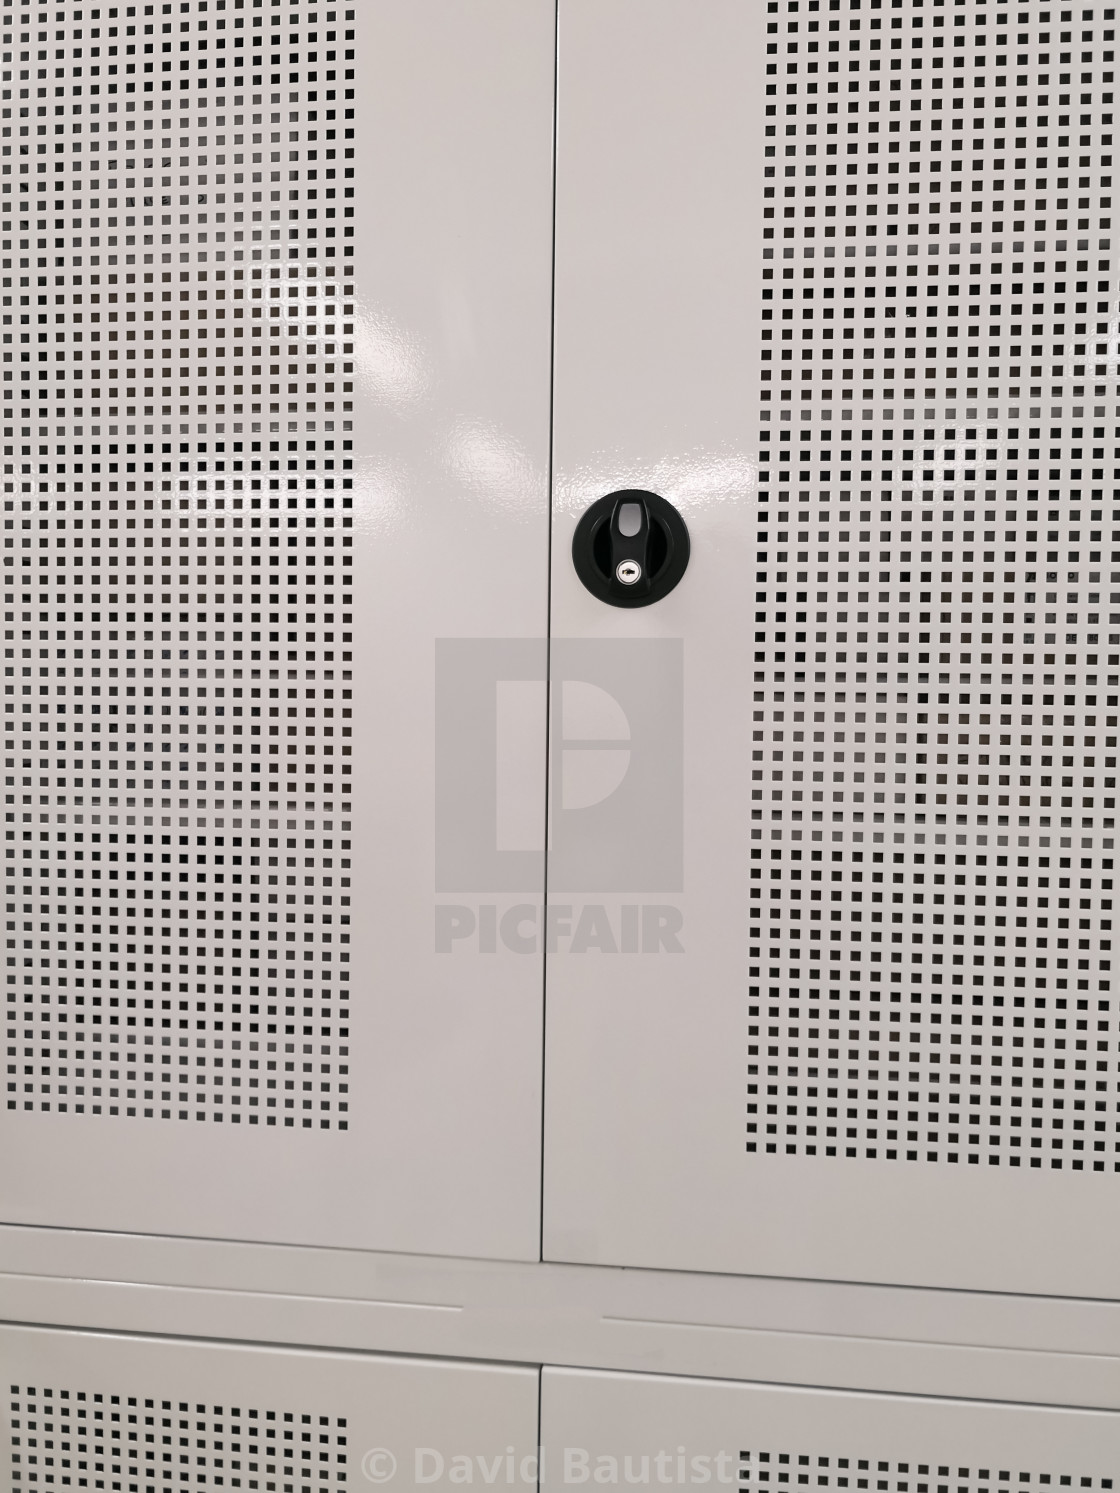 Front view of a locker with mesh grid and a black safety